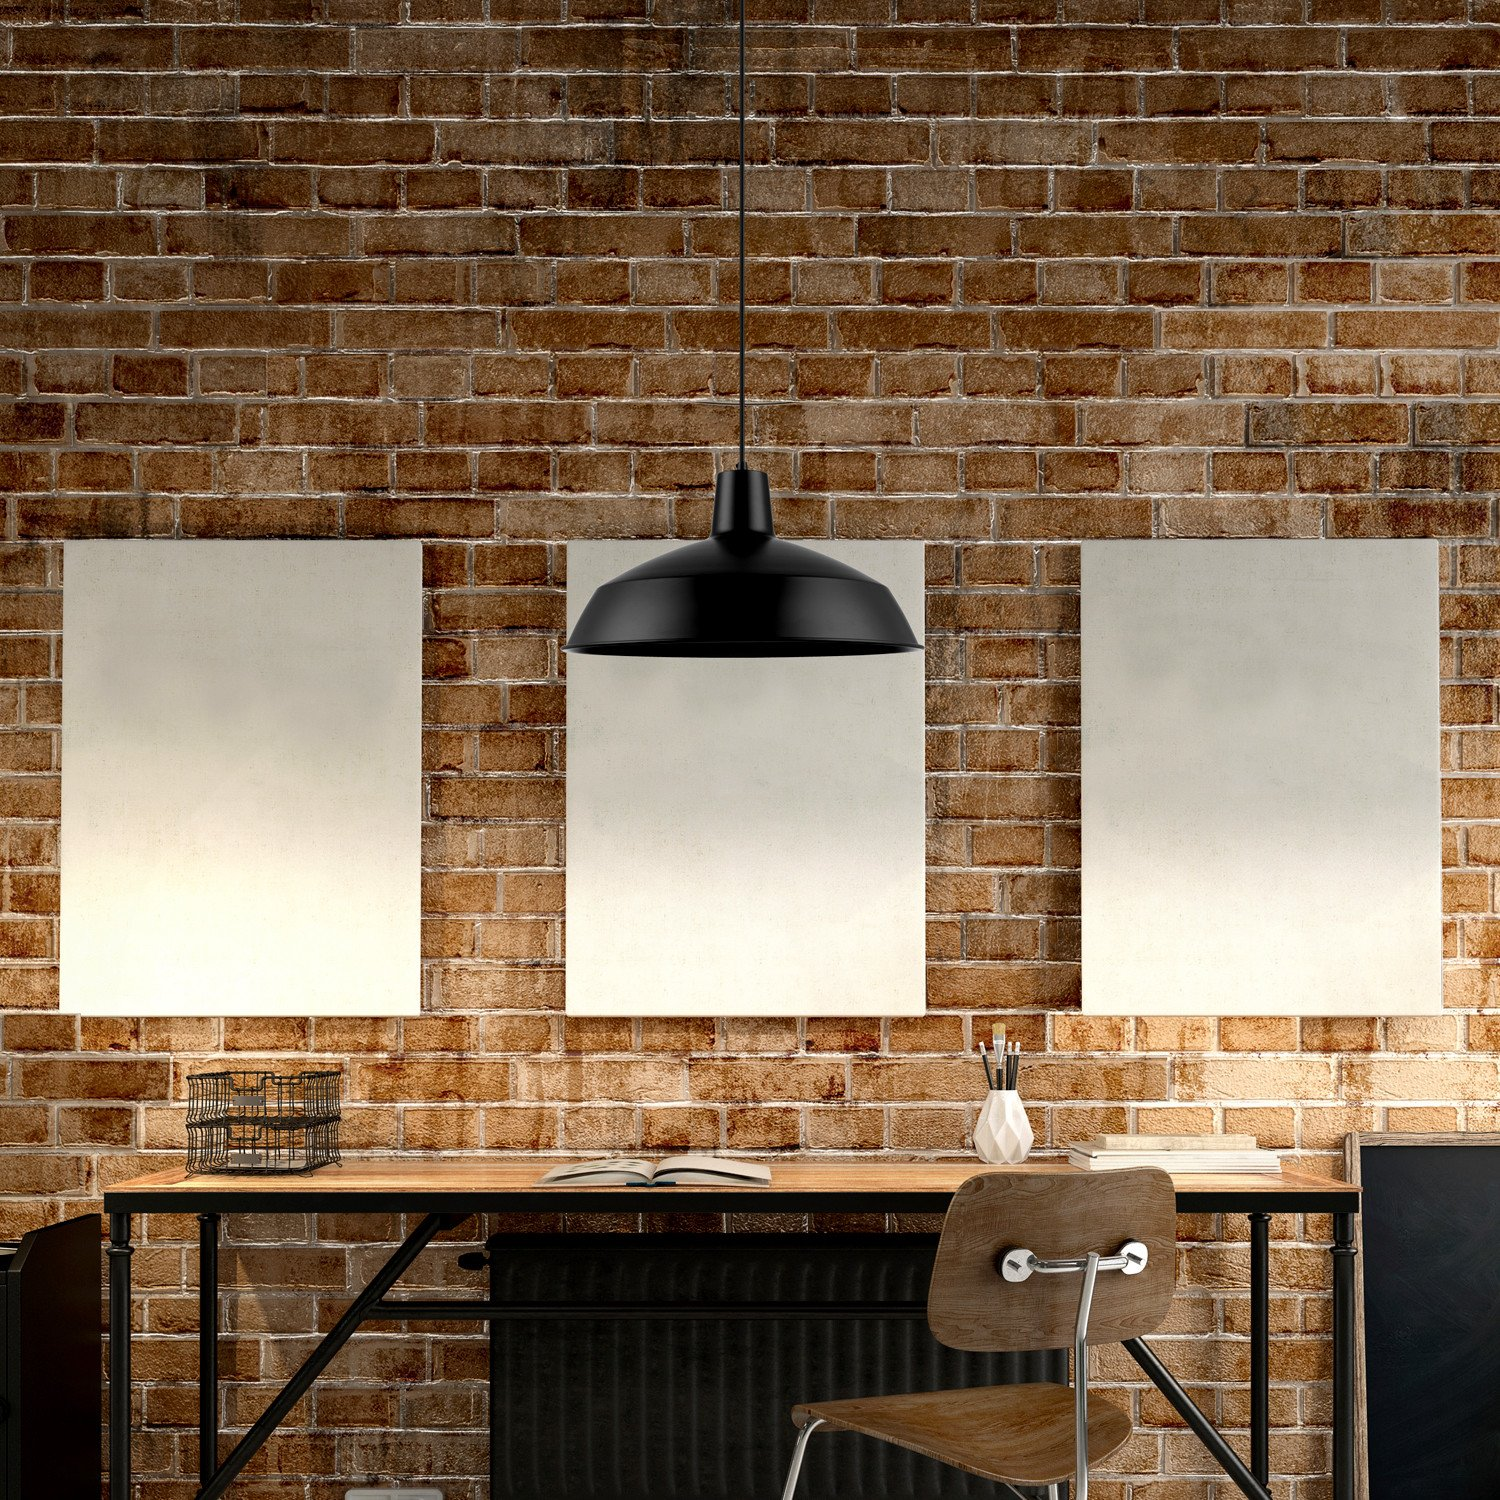 Globe Electric Barnyard 1-Light 16'' Industrial Warehouse Pendant, Matte Black Finish, 65155 by Globe Electric (Image #8)